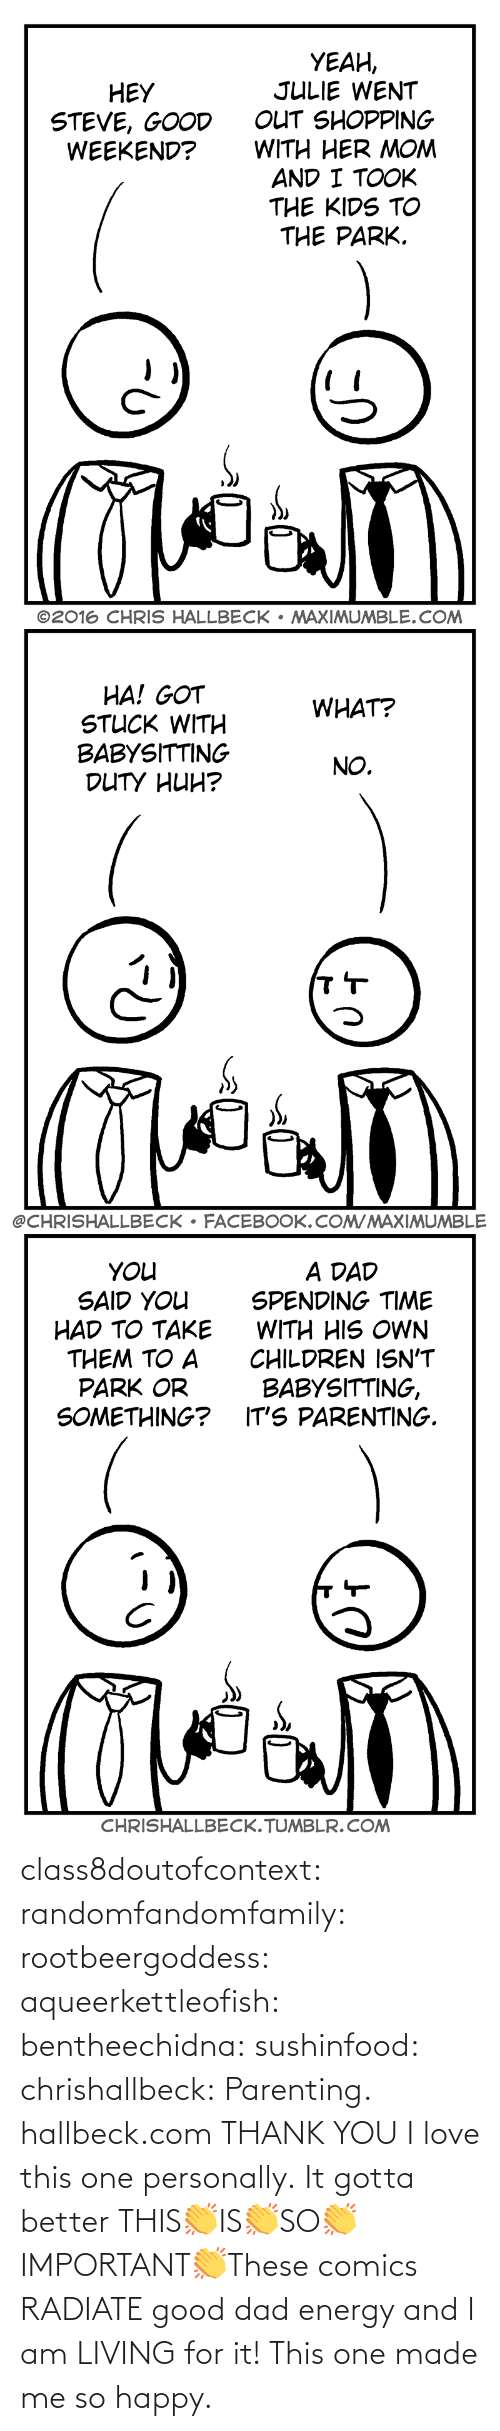 Gotta: class8doutofcontext: randomfandomfamily:  rootbeergoddess:  aqueerkettleofish:  bentheechidna:  sushinfood:  chrishallbeck:  Parenting. hallbeck.com  THANK YOU  I love this one personally.    It gotta better   THIS👏IS👏SO👏IMPORTANT👏These comics RADIATE good dad energy and I am LIVING for it!    This one made me so happy.